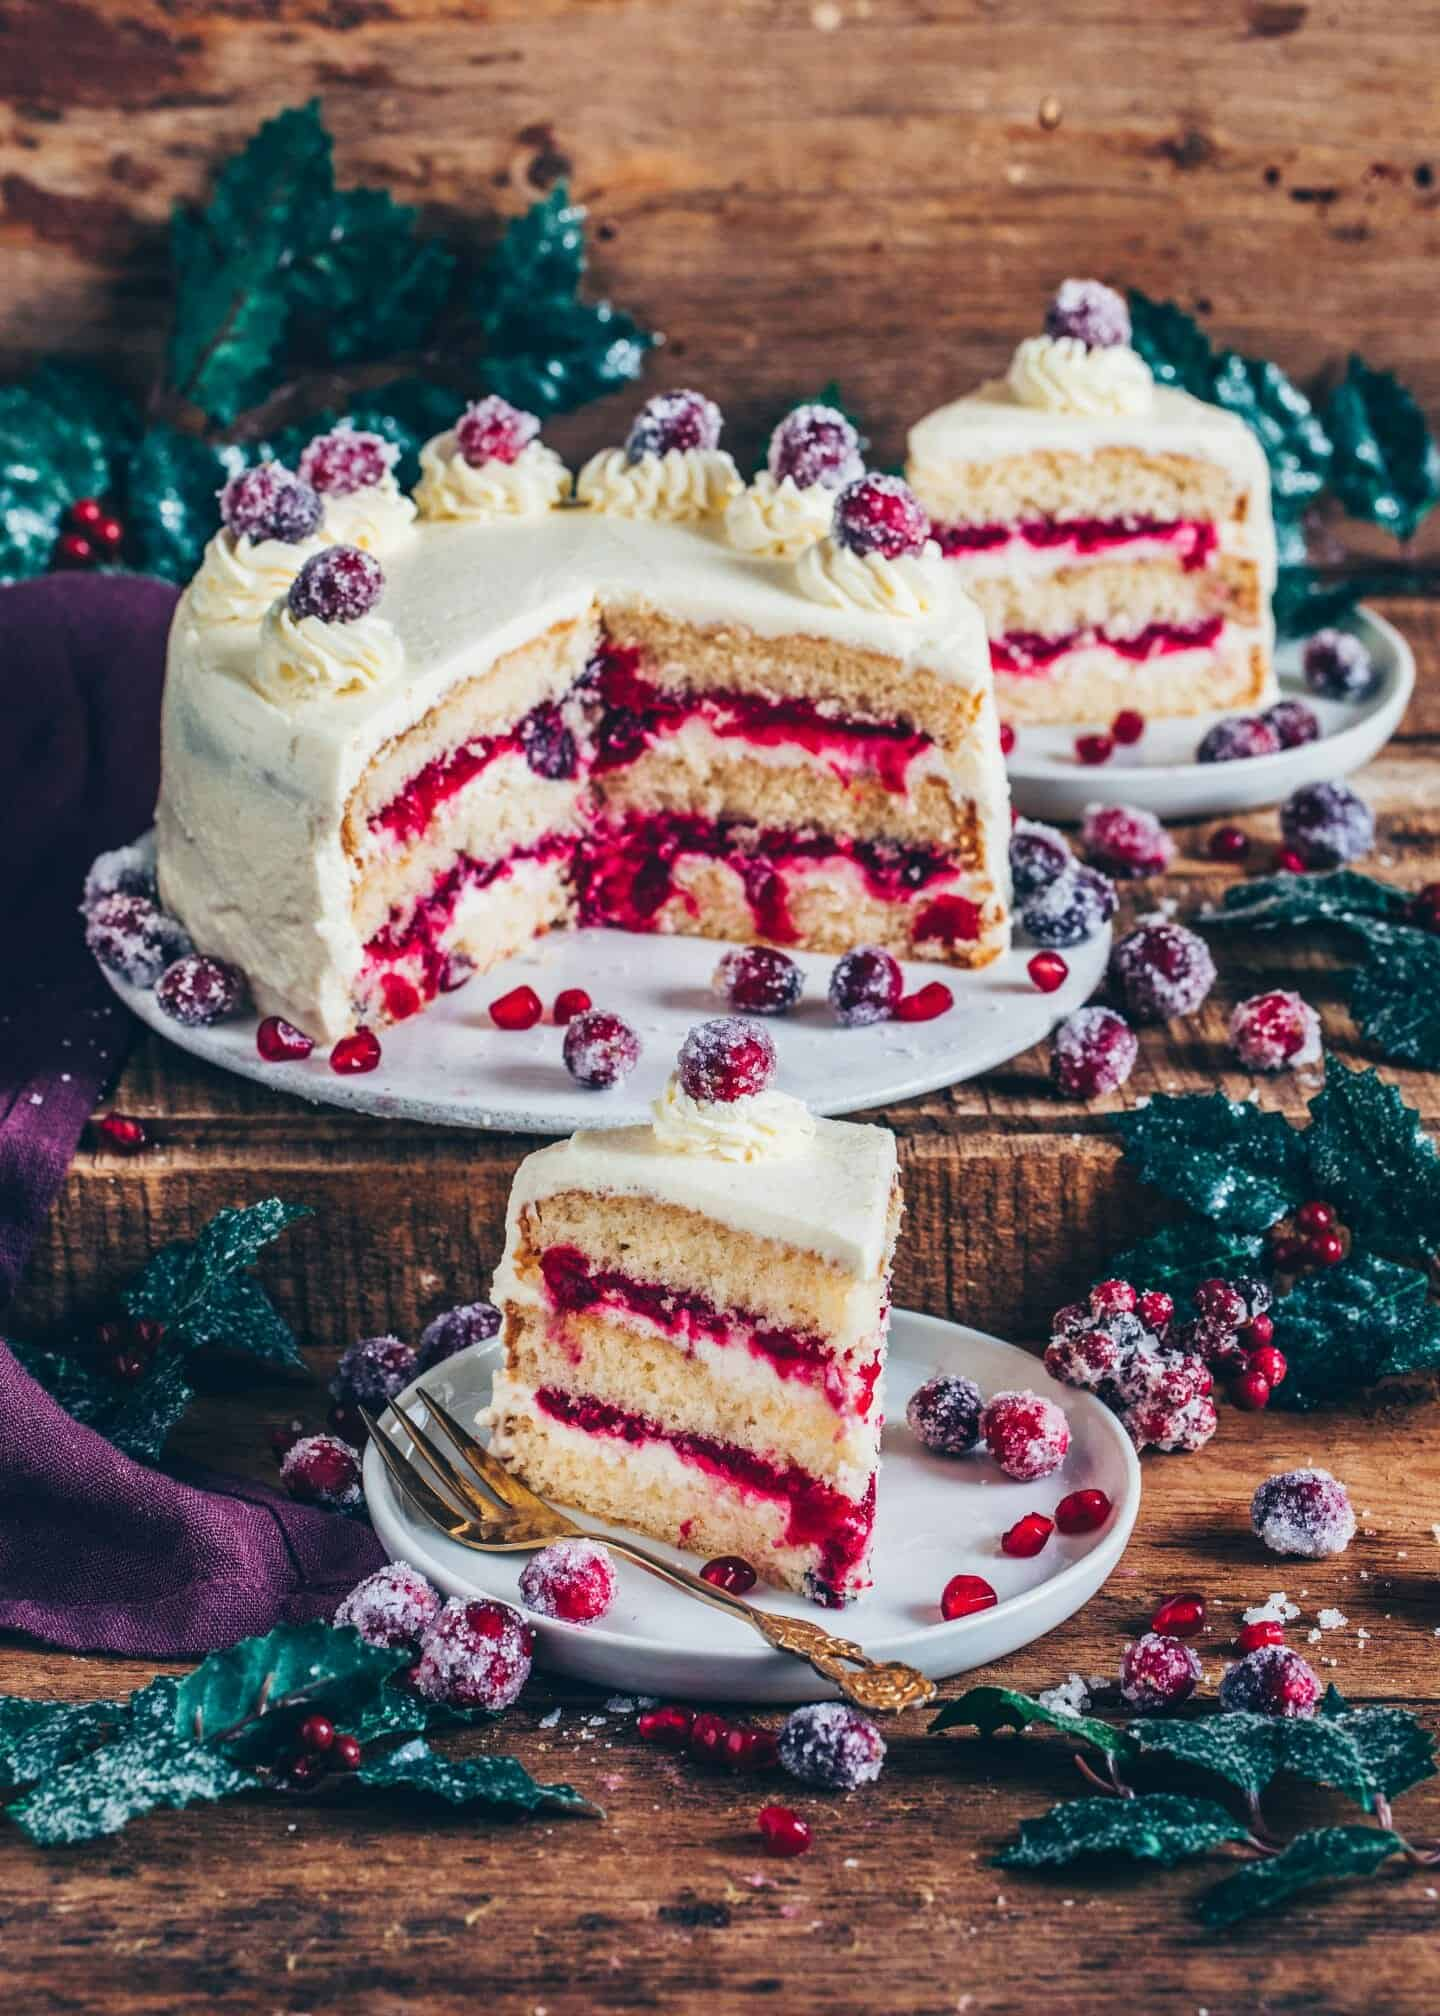 This Cranberry Cake is made of fluffy Vegan Vanilla Cake layers, a homemade Cranberry Compote Filling and a creamy Frosting. It's not only the perfect Christmas Cake but also for any time!